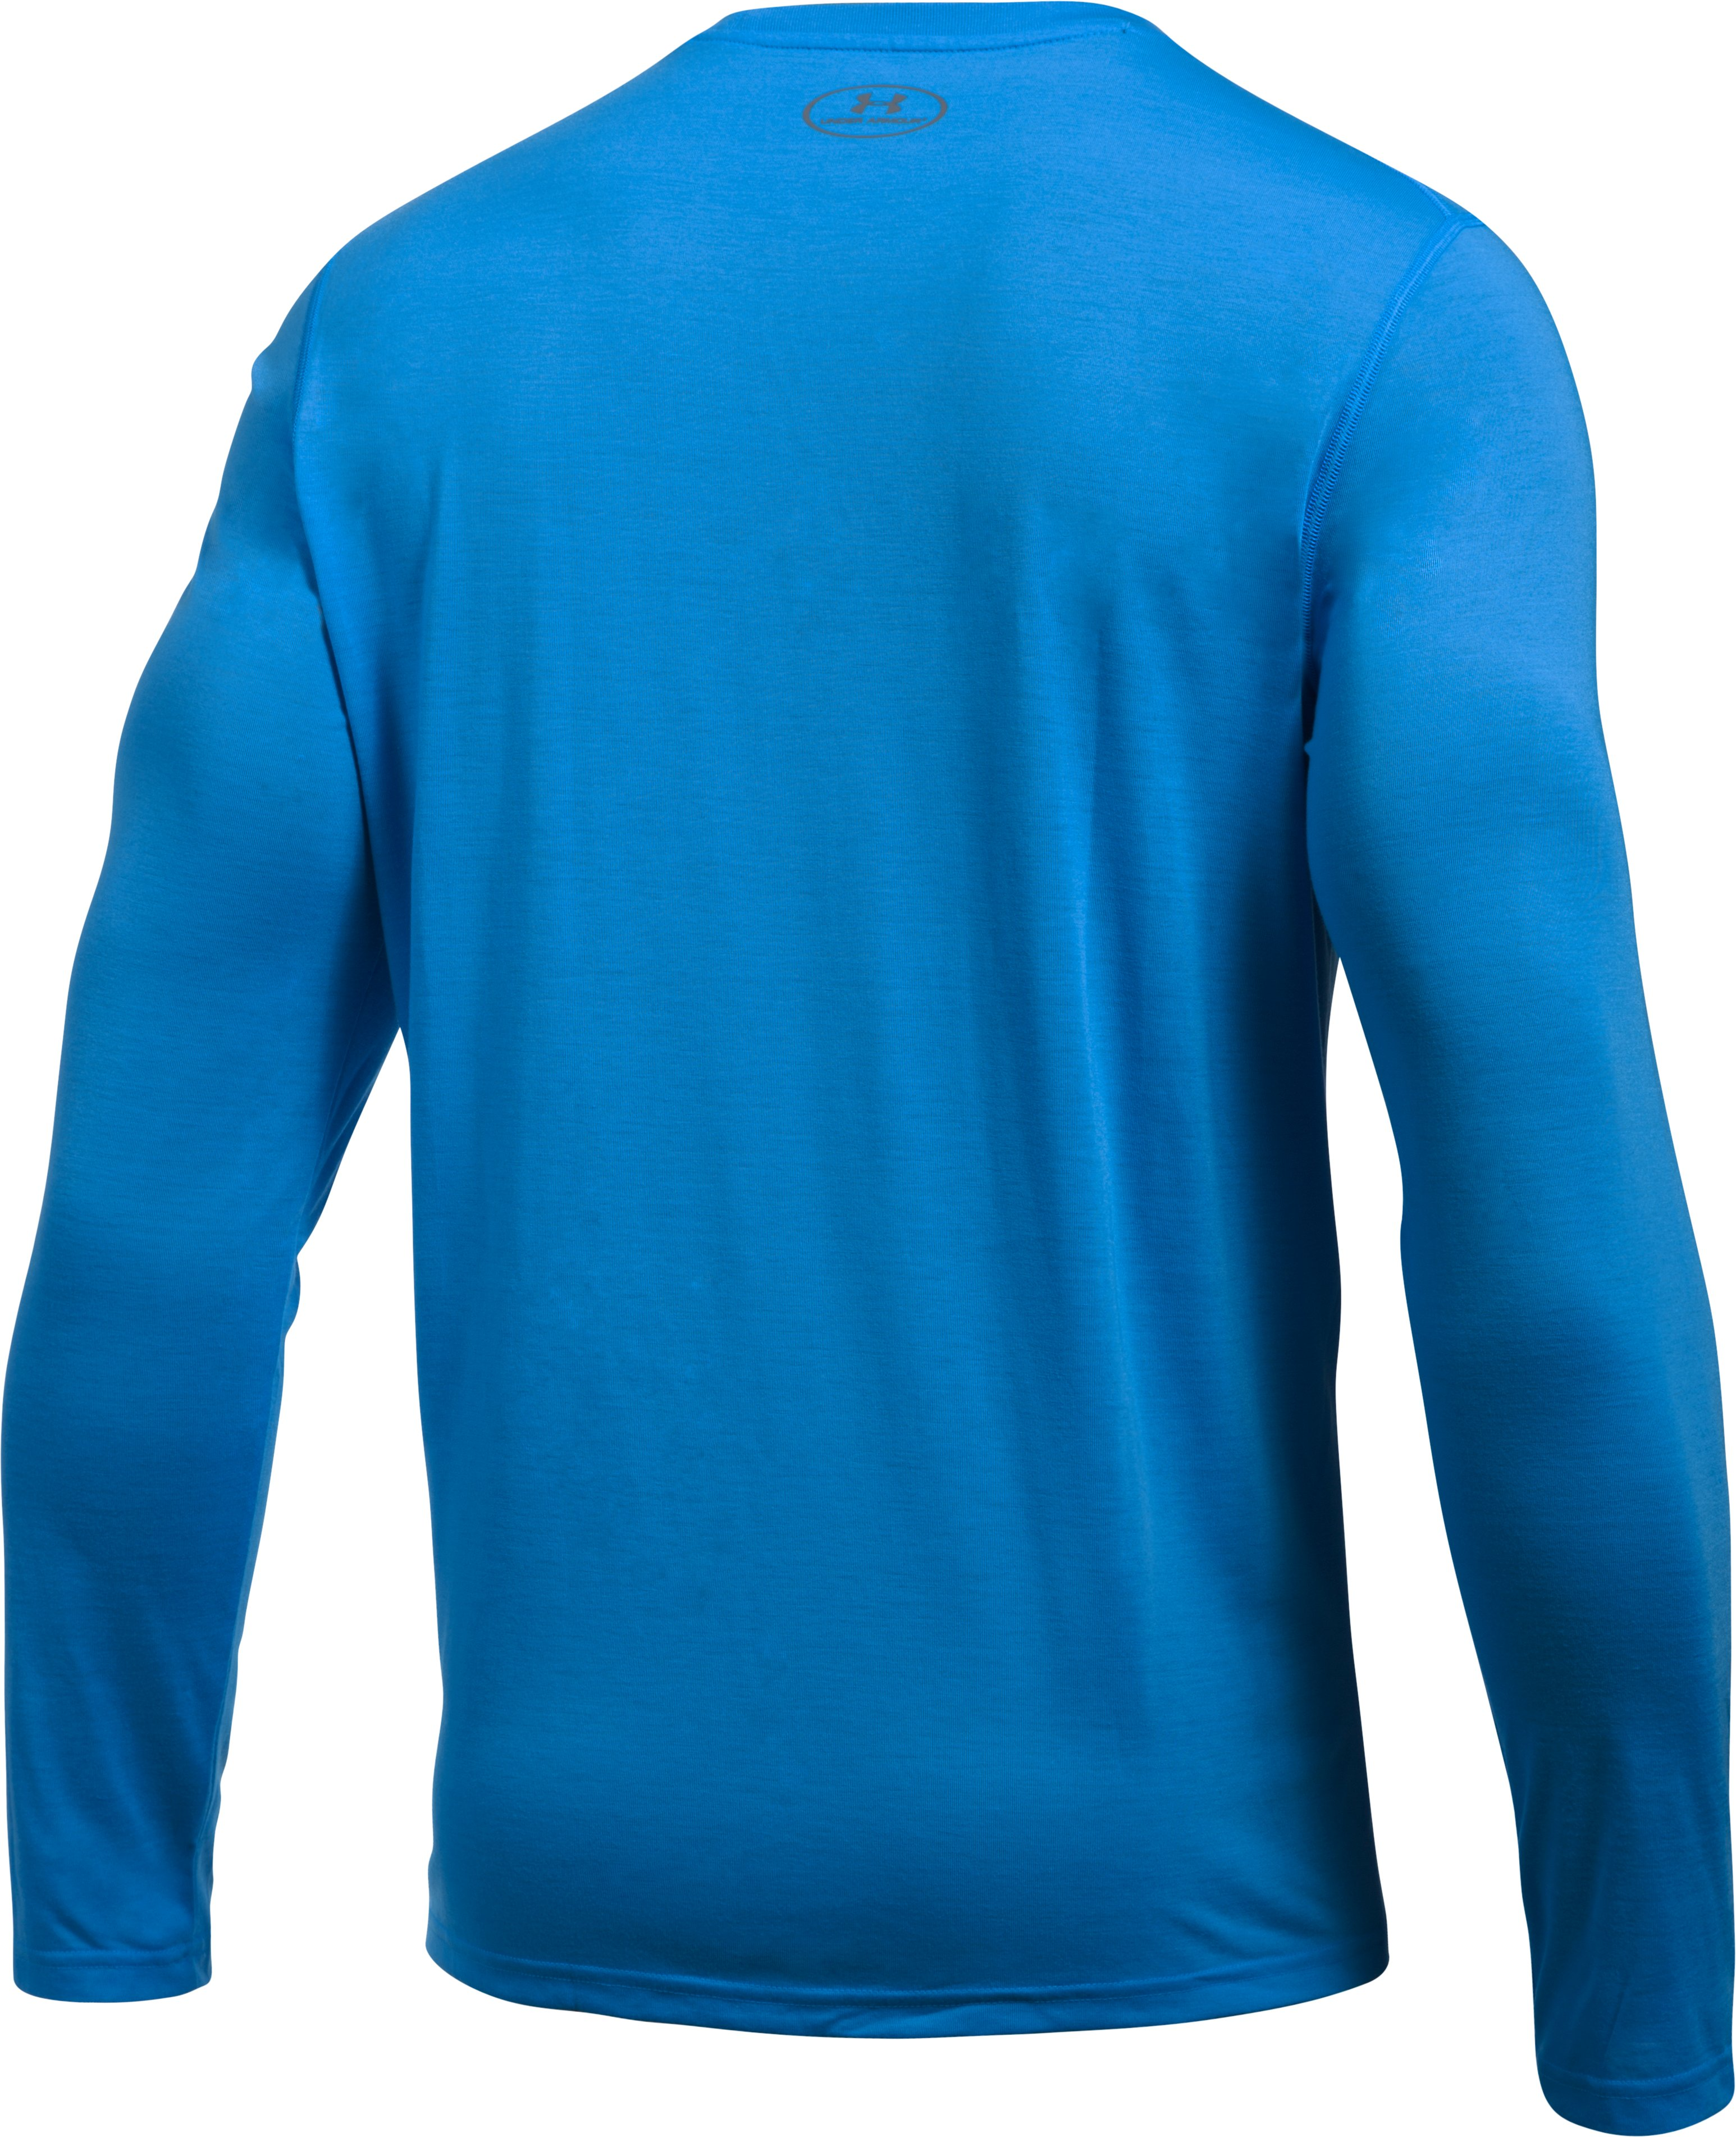 Men's UA Threadborne Siro Long Sleeve T-Shirt, MAKO BLUE, undefined